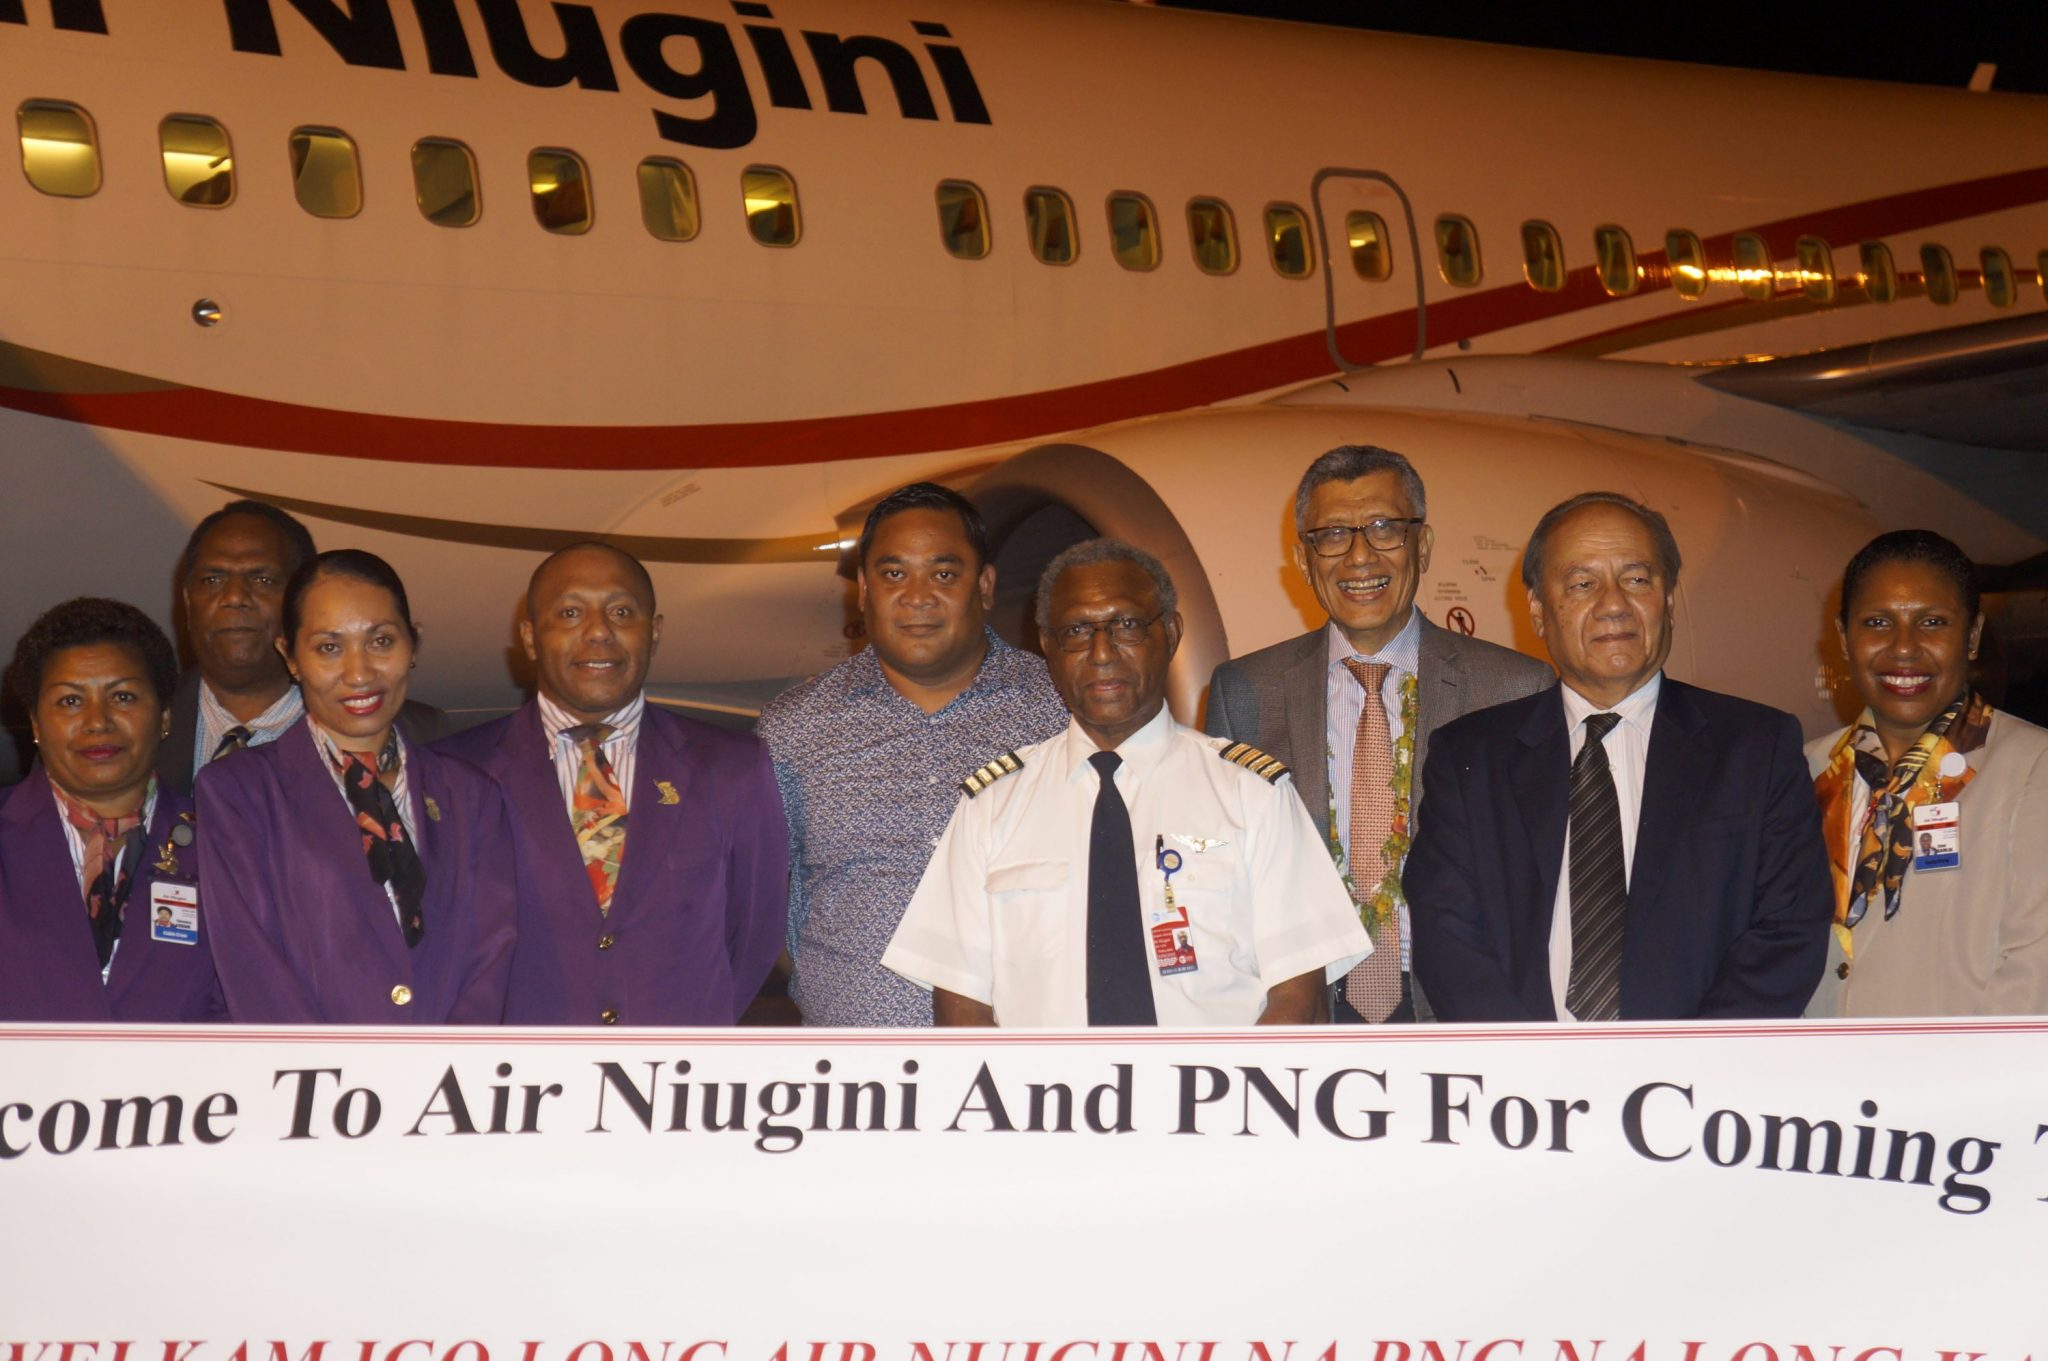 Air Niugini commences services to Federated States of Micronesia